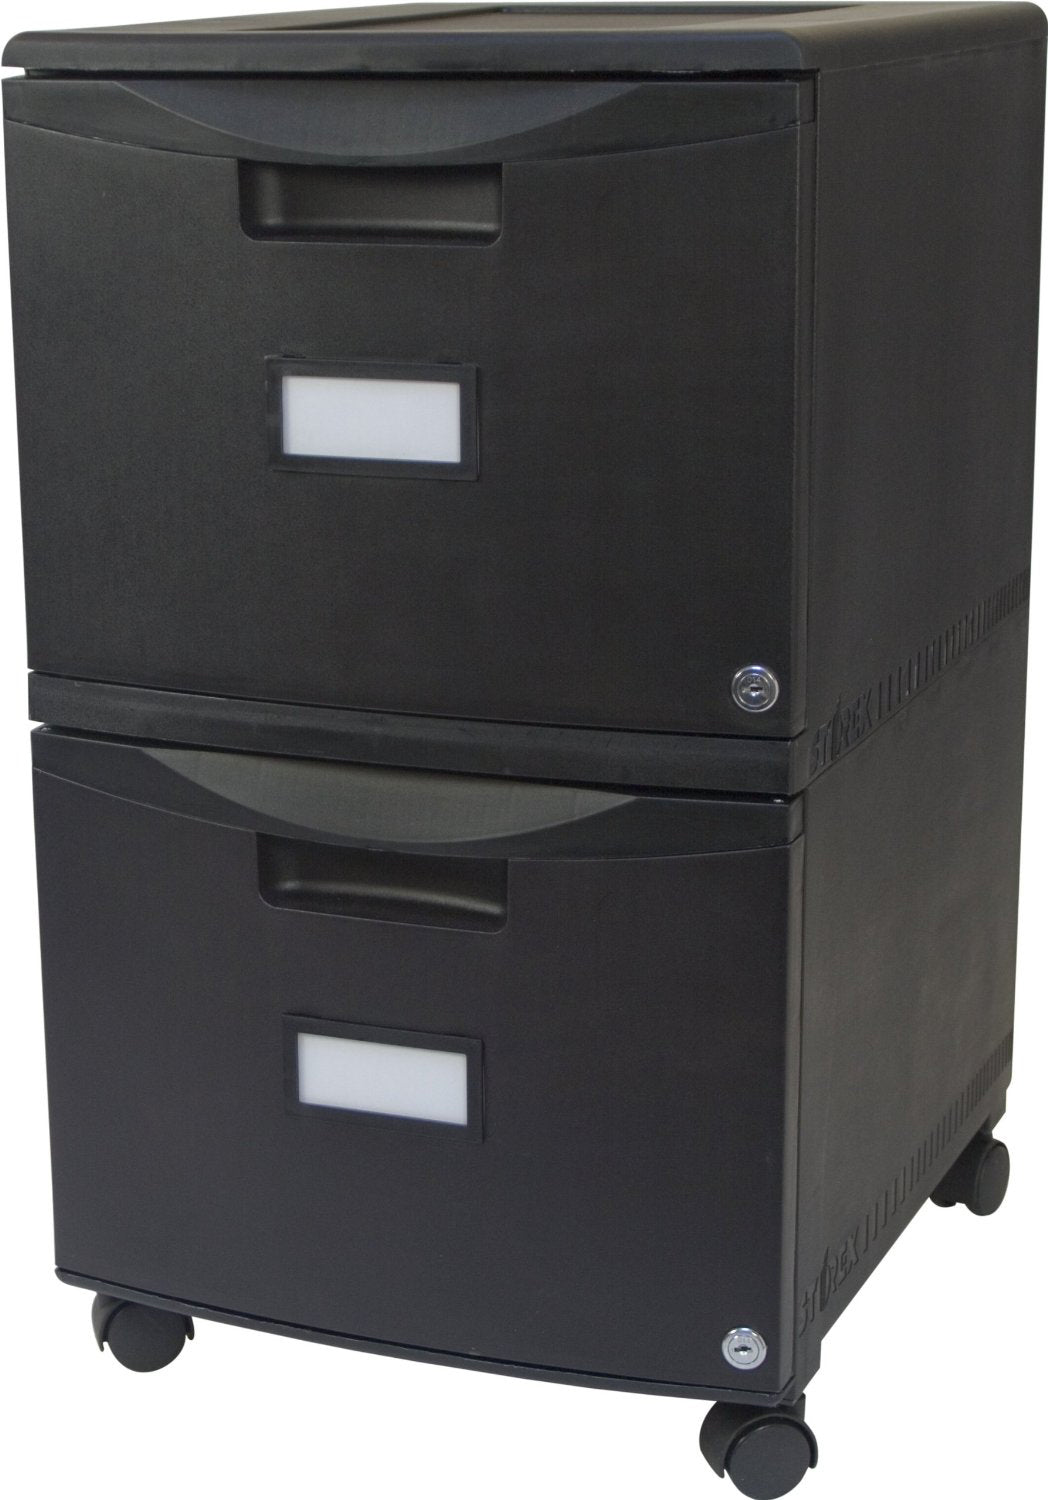 Two Drawer Mobile File Cabinet with Lock, all Black